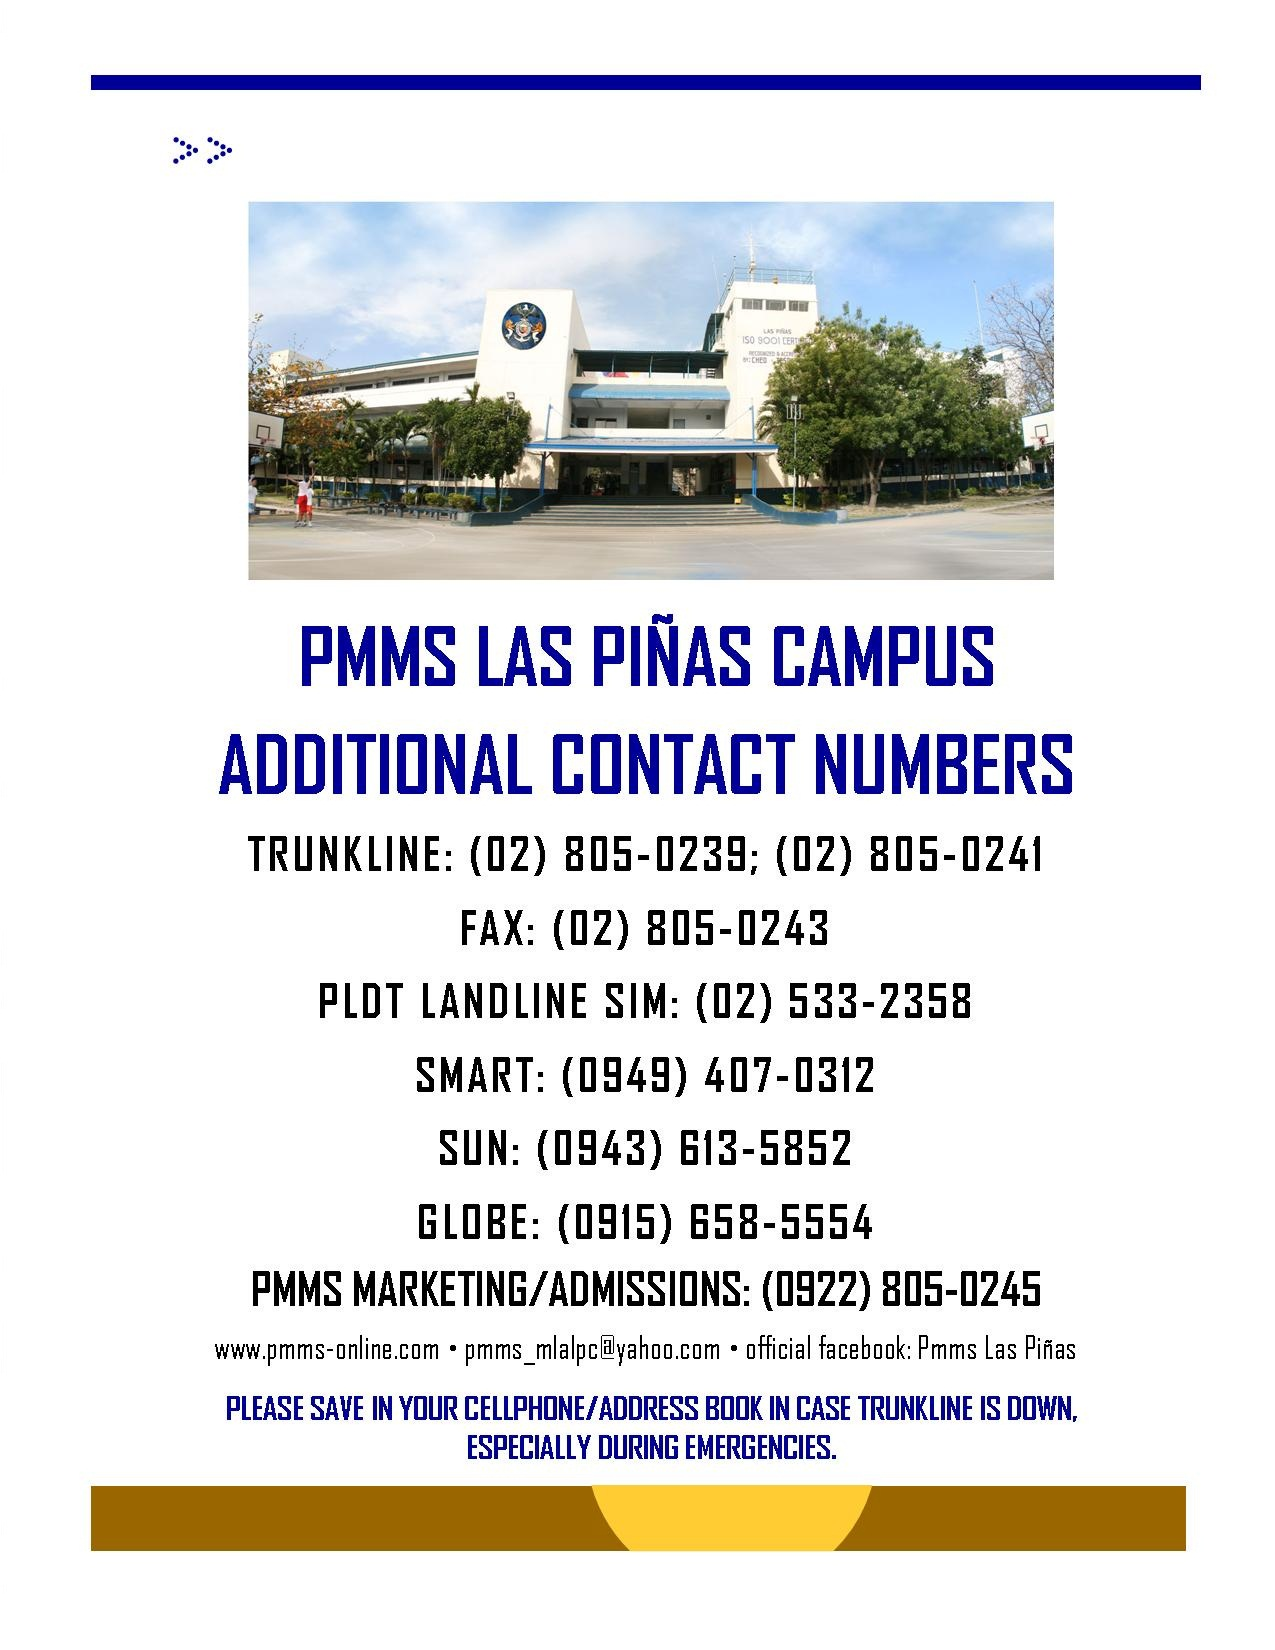 pmms lp new numbers